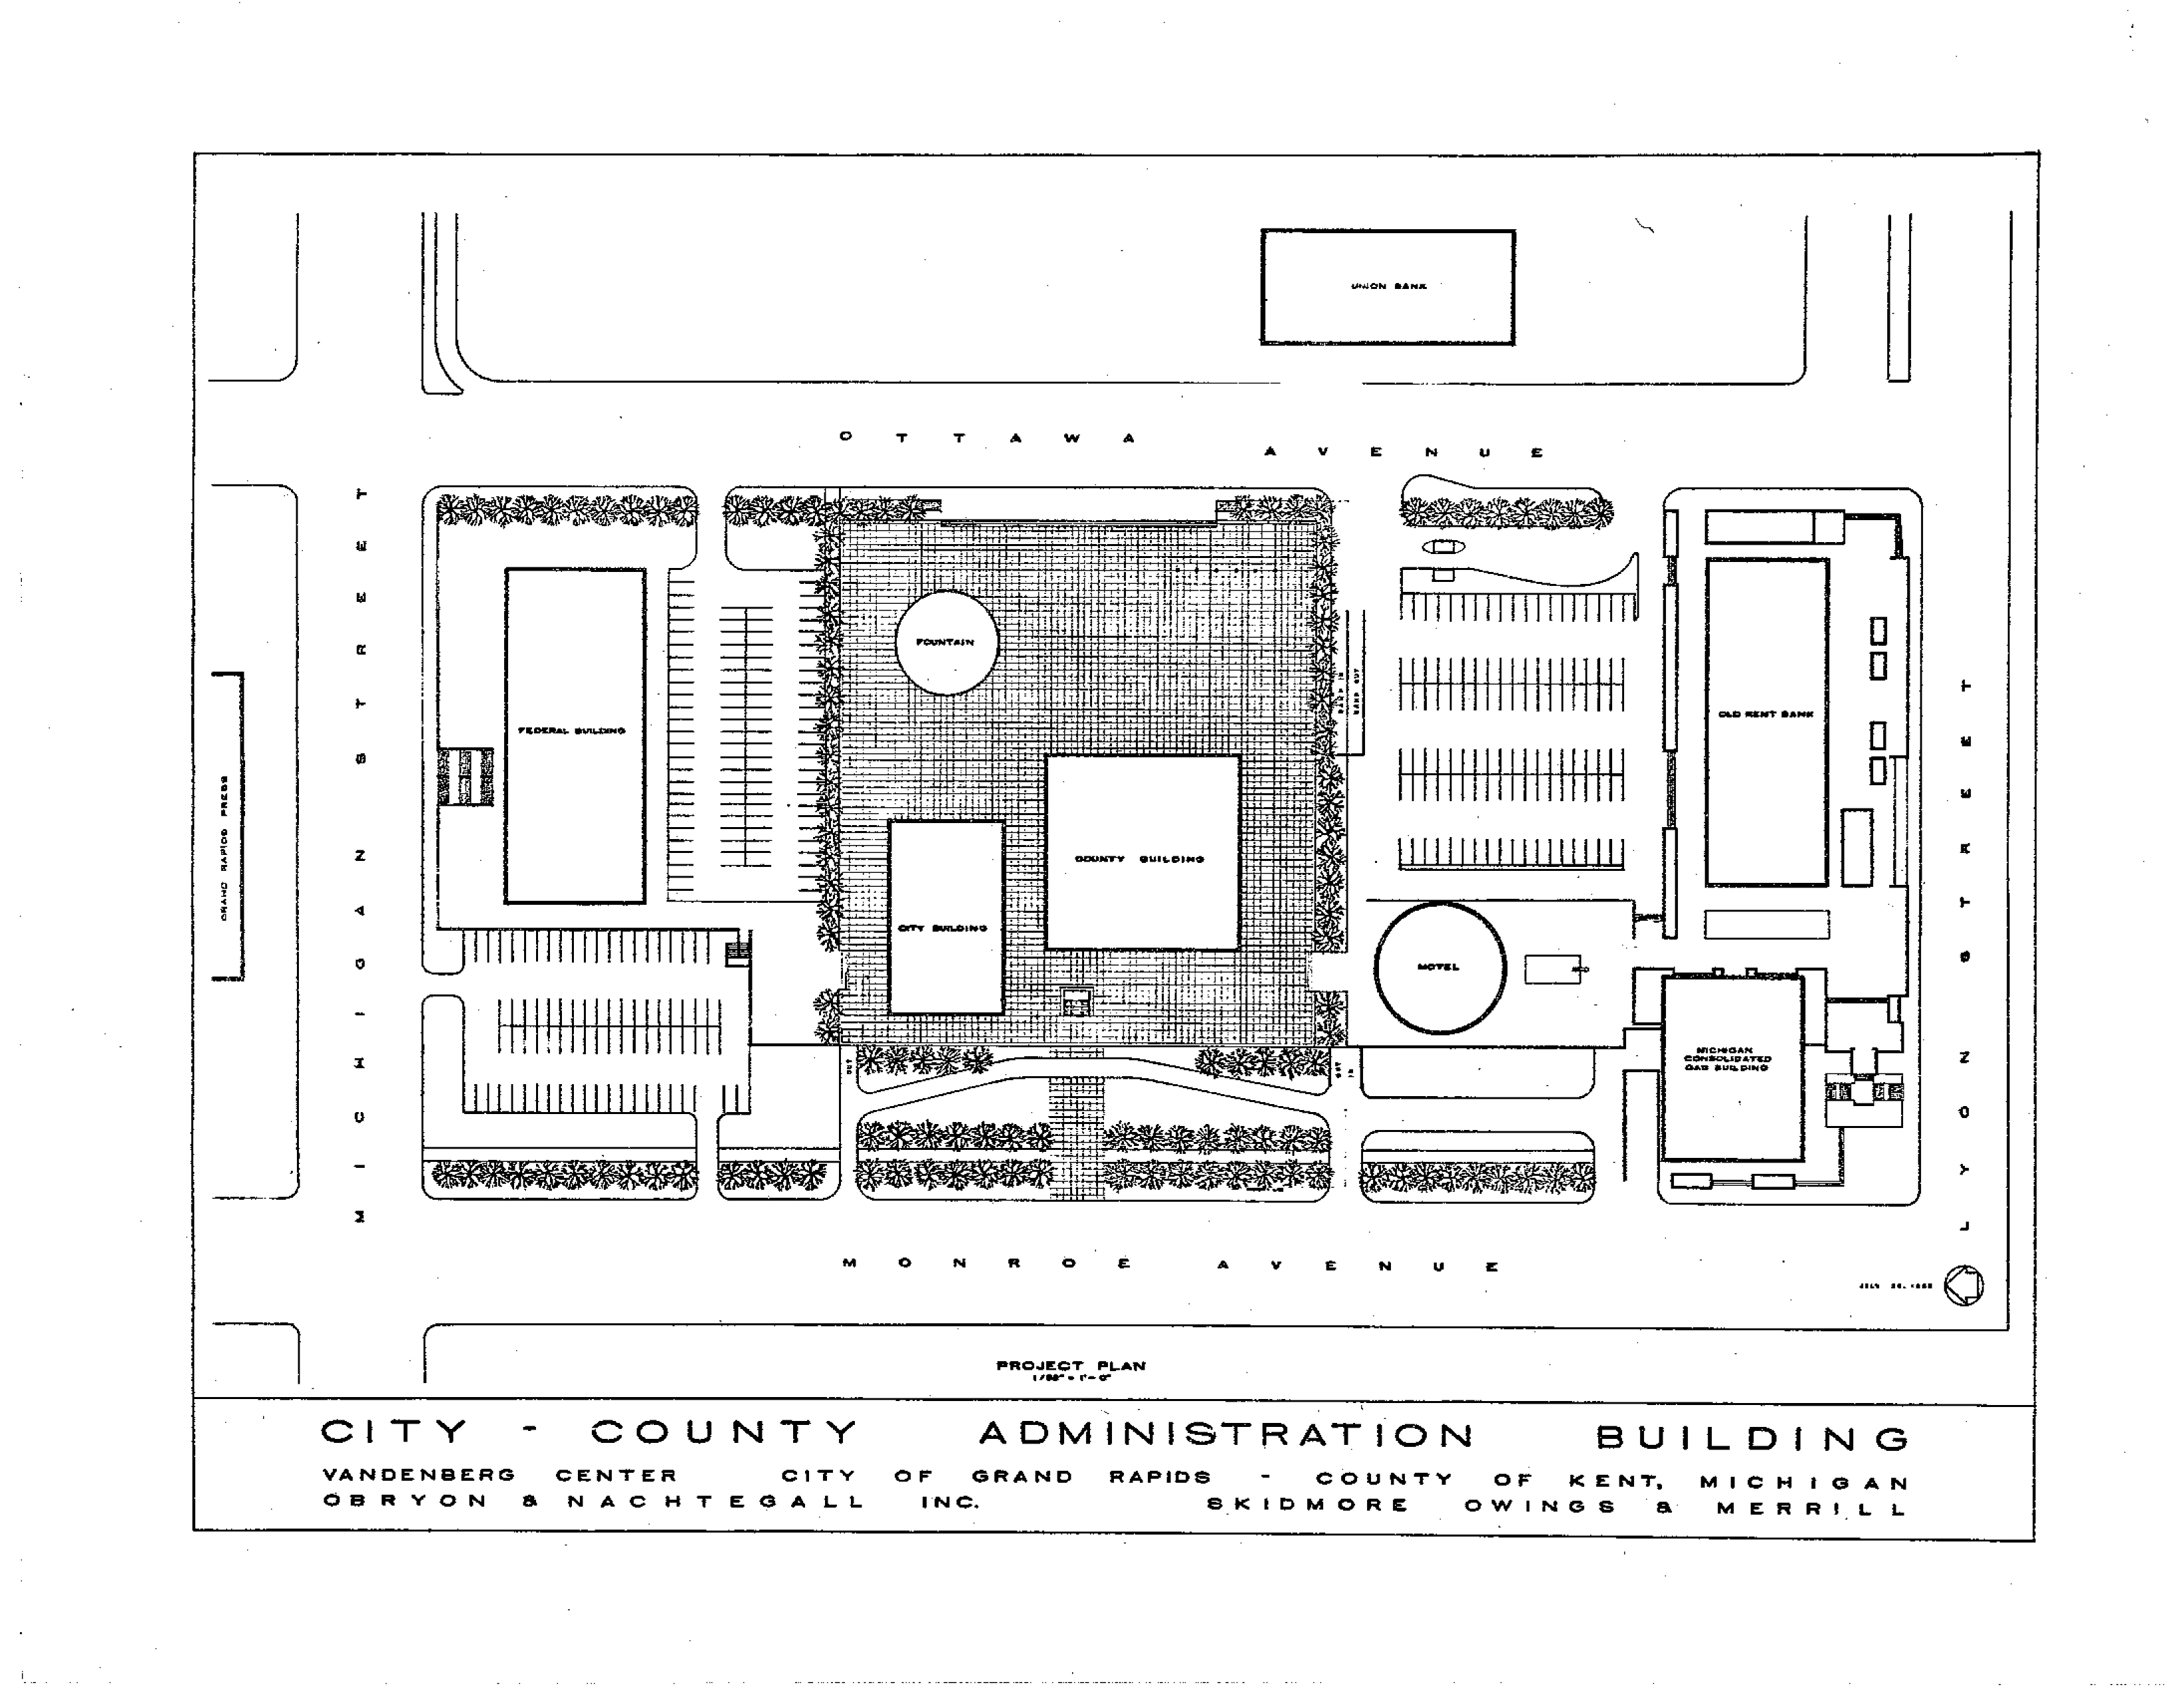 hight resolution of 1965 project plan of city county complex showing fountain feature